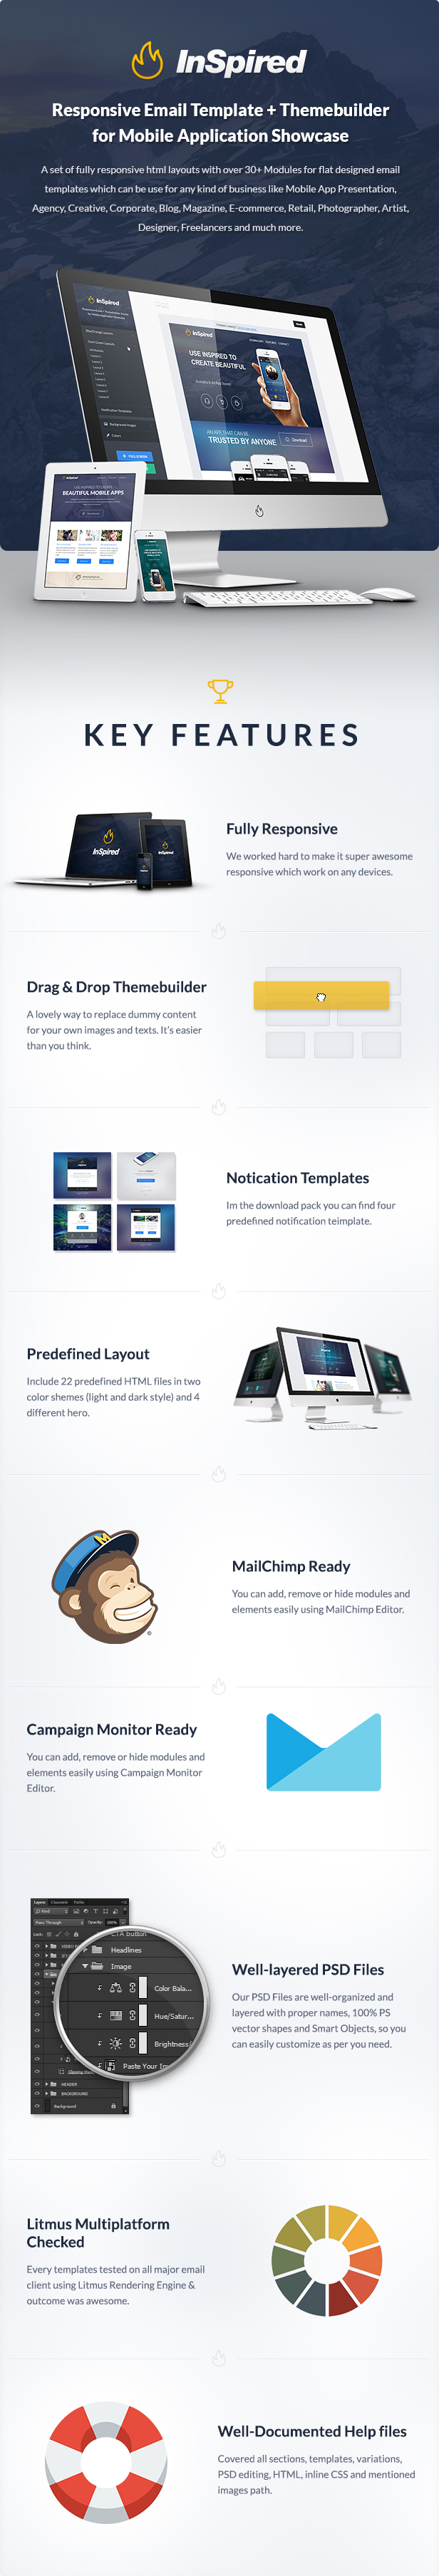 Inspired - Responsive Email + Themebuilder Access